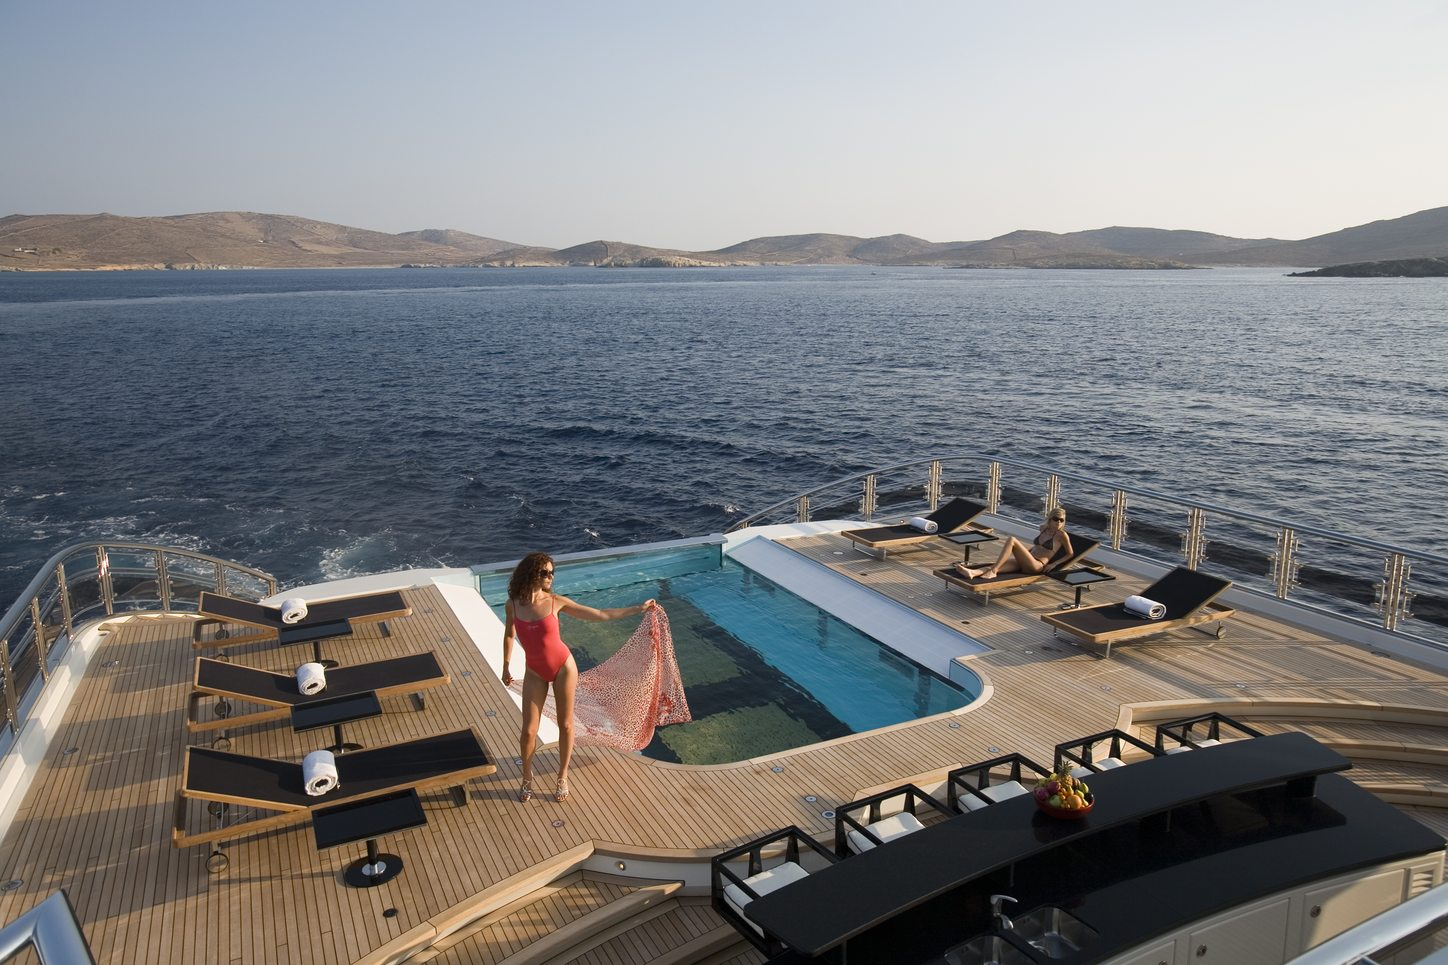 superyacht ALFA NERO infinity pool with women reclining nearby